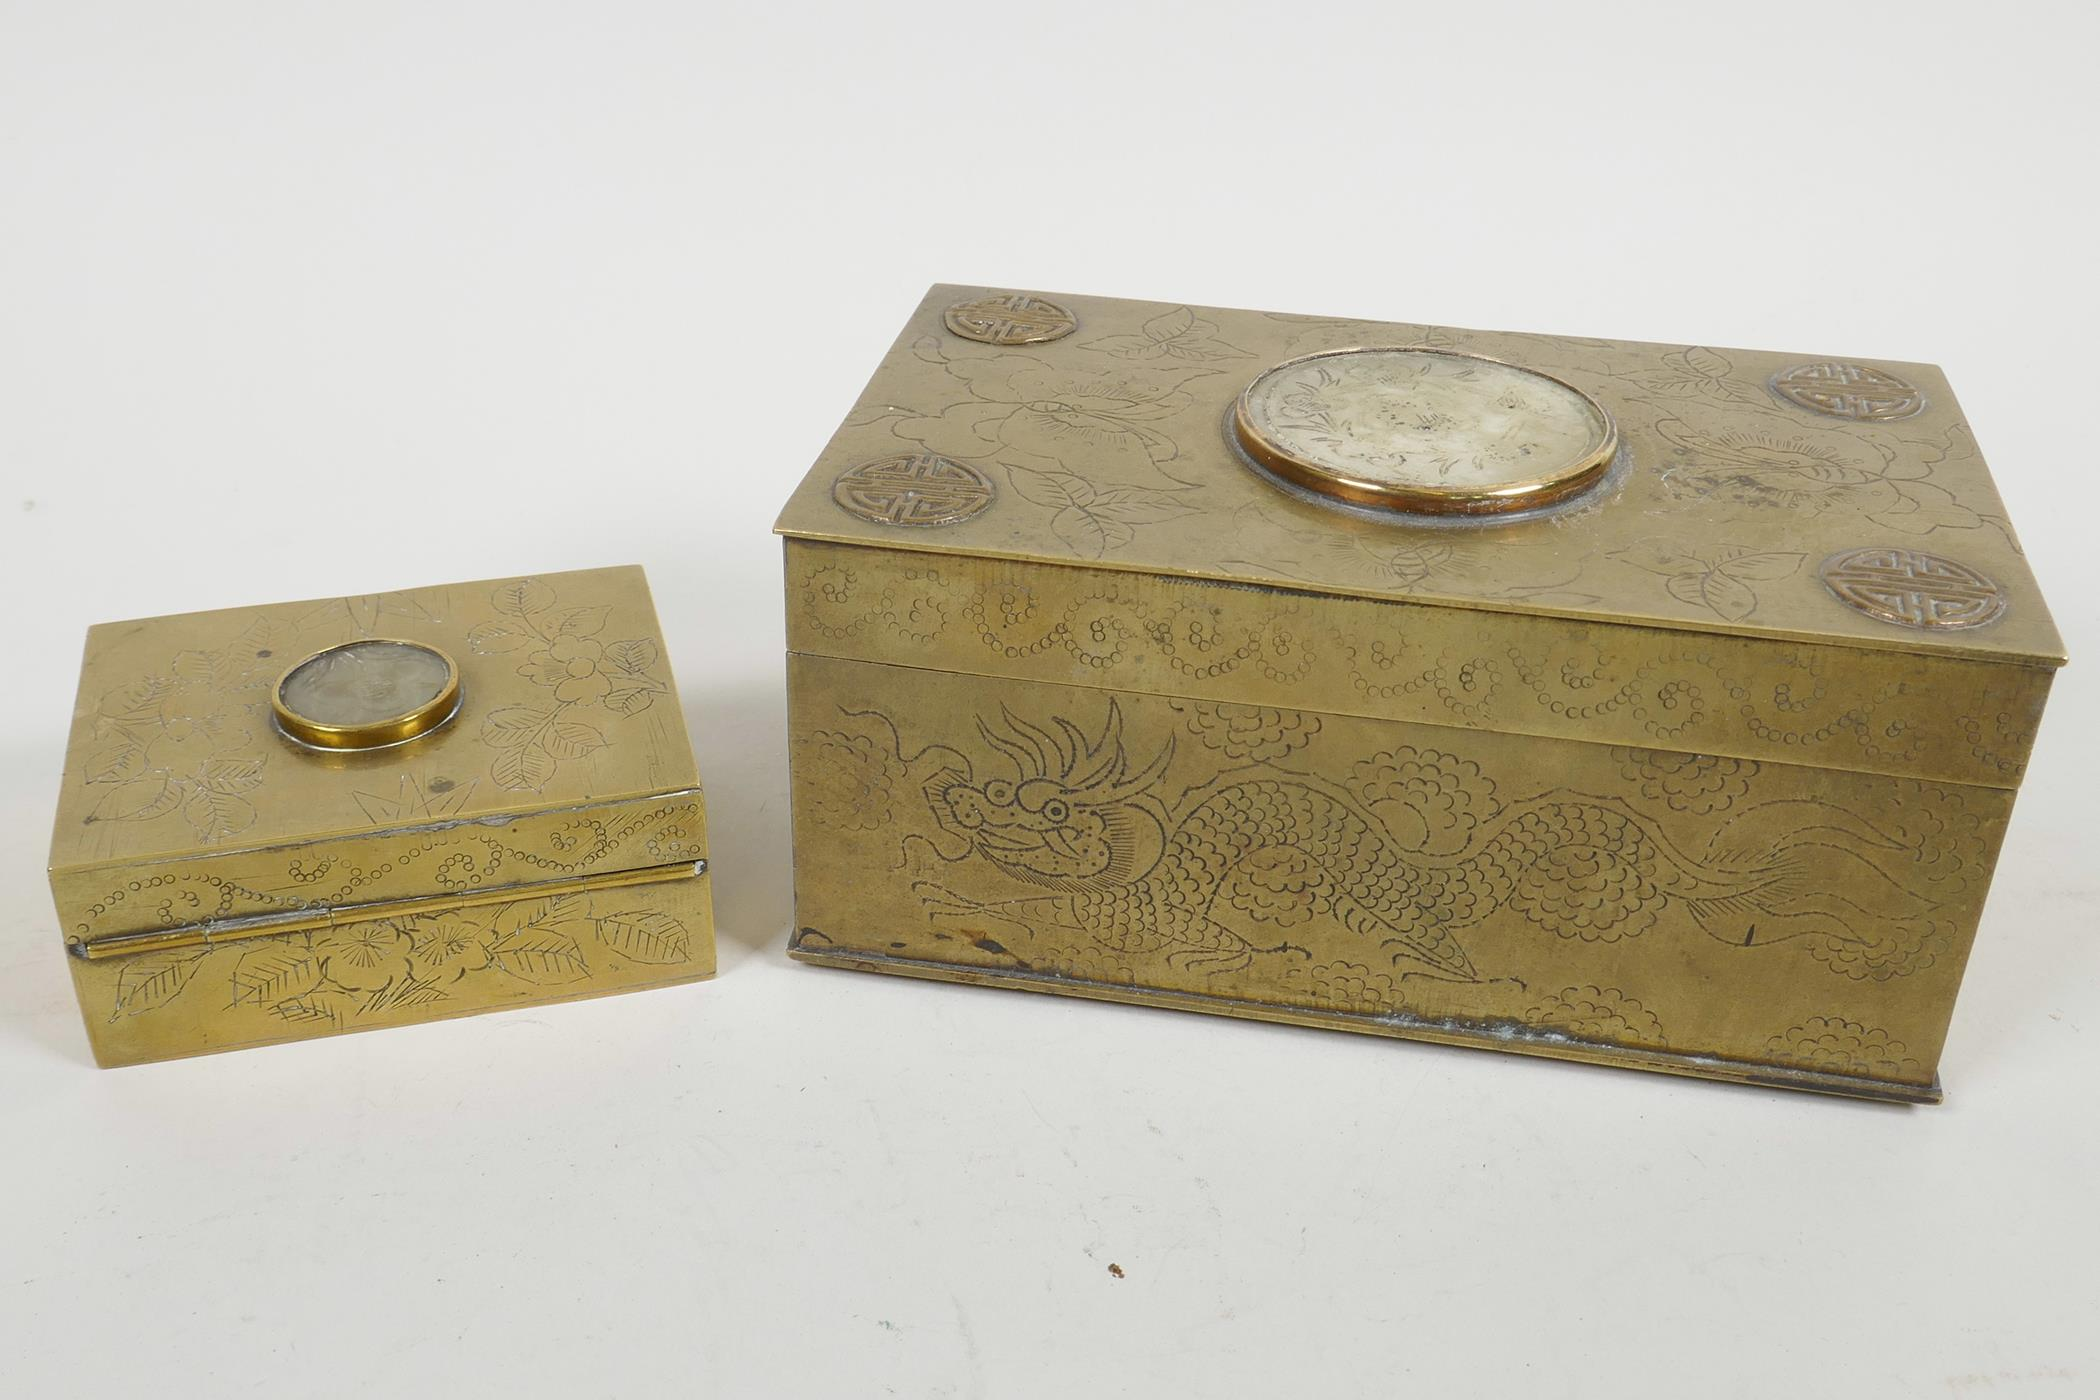 Lot 74 - A Chinese brass cased table cigarette box engraved with bats and dragons, and having applied symbols